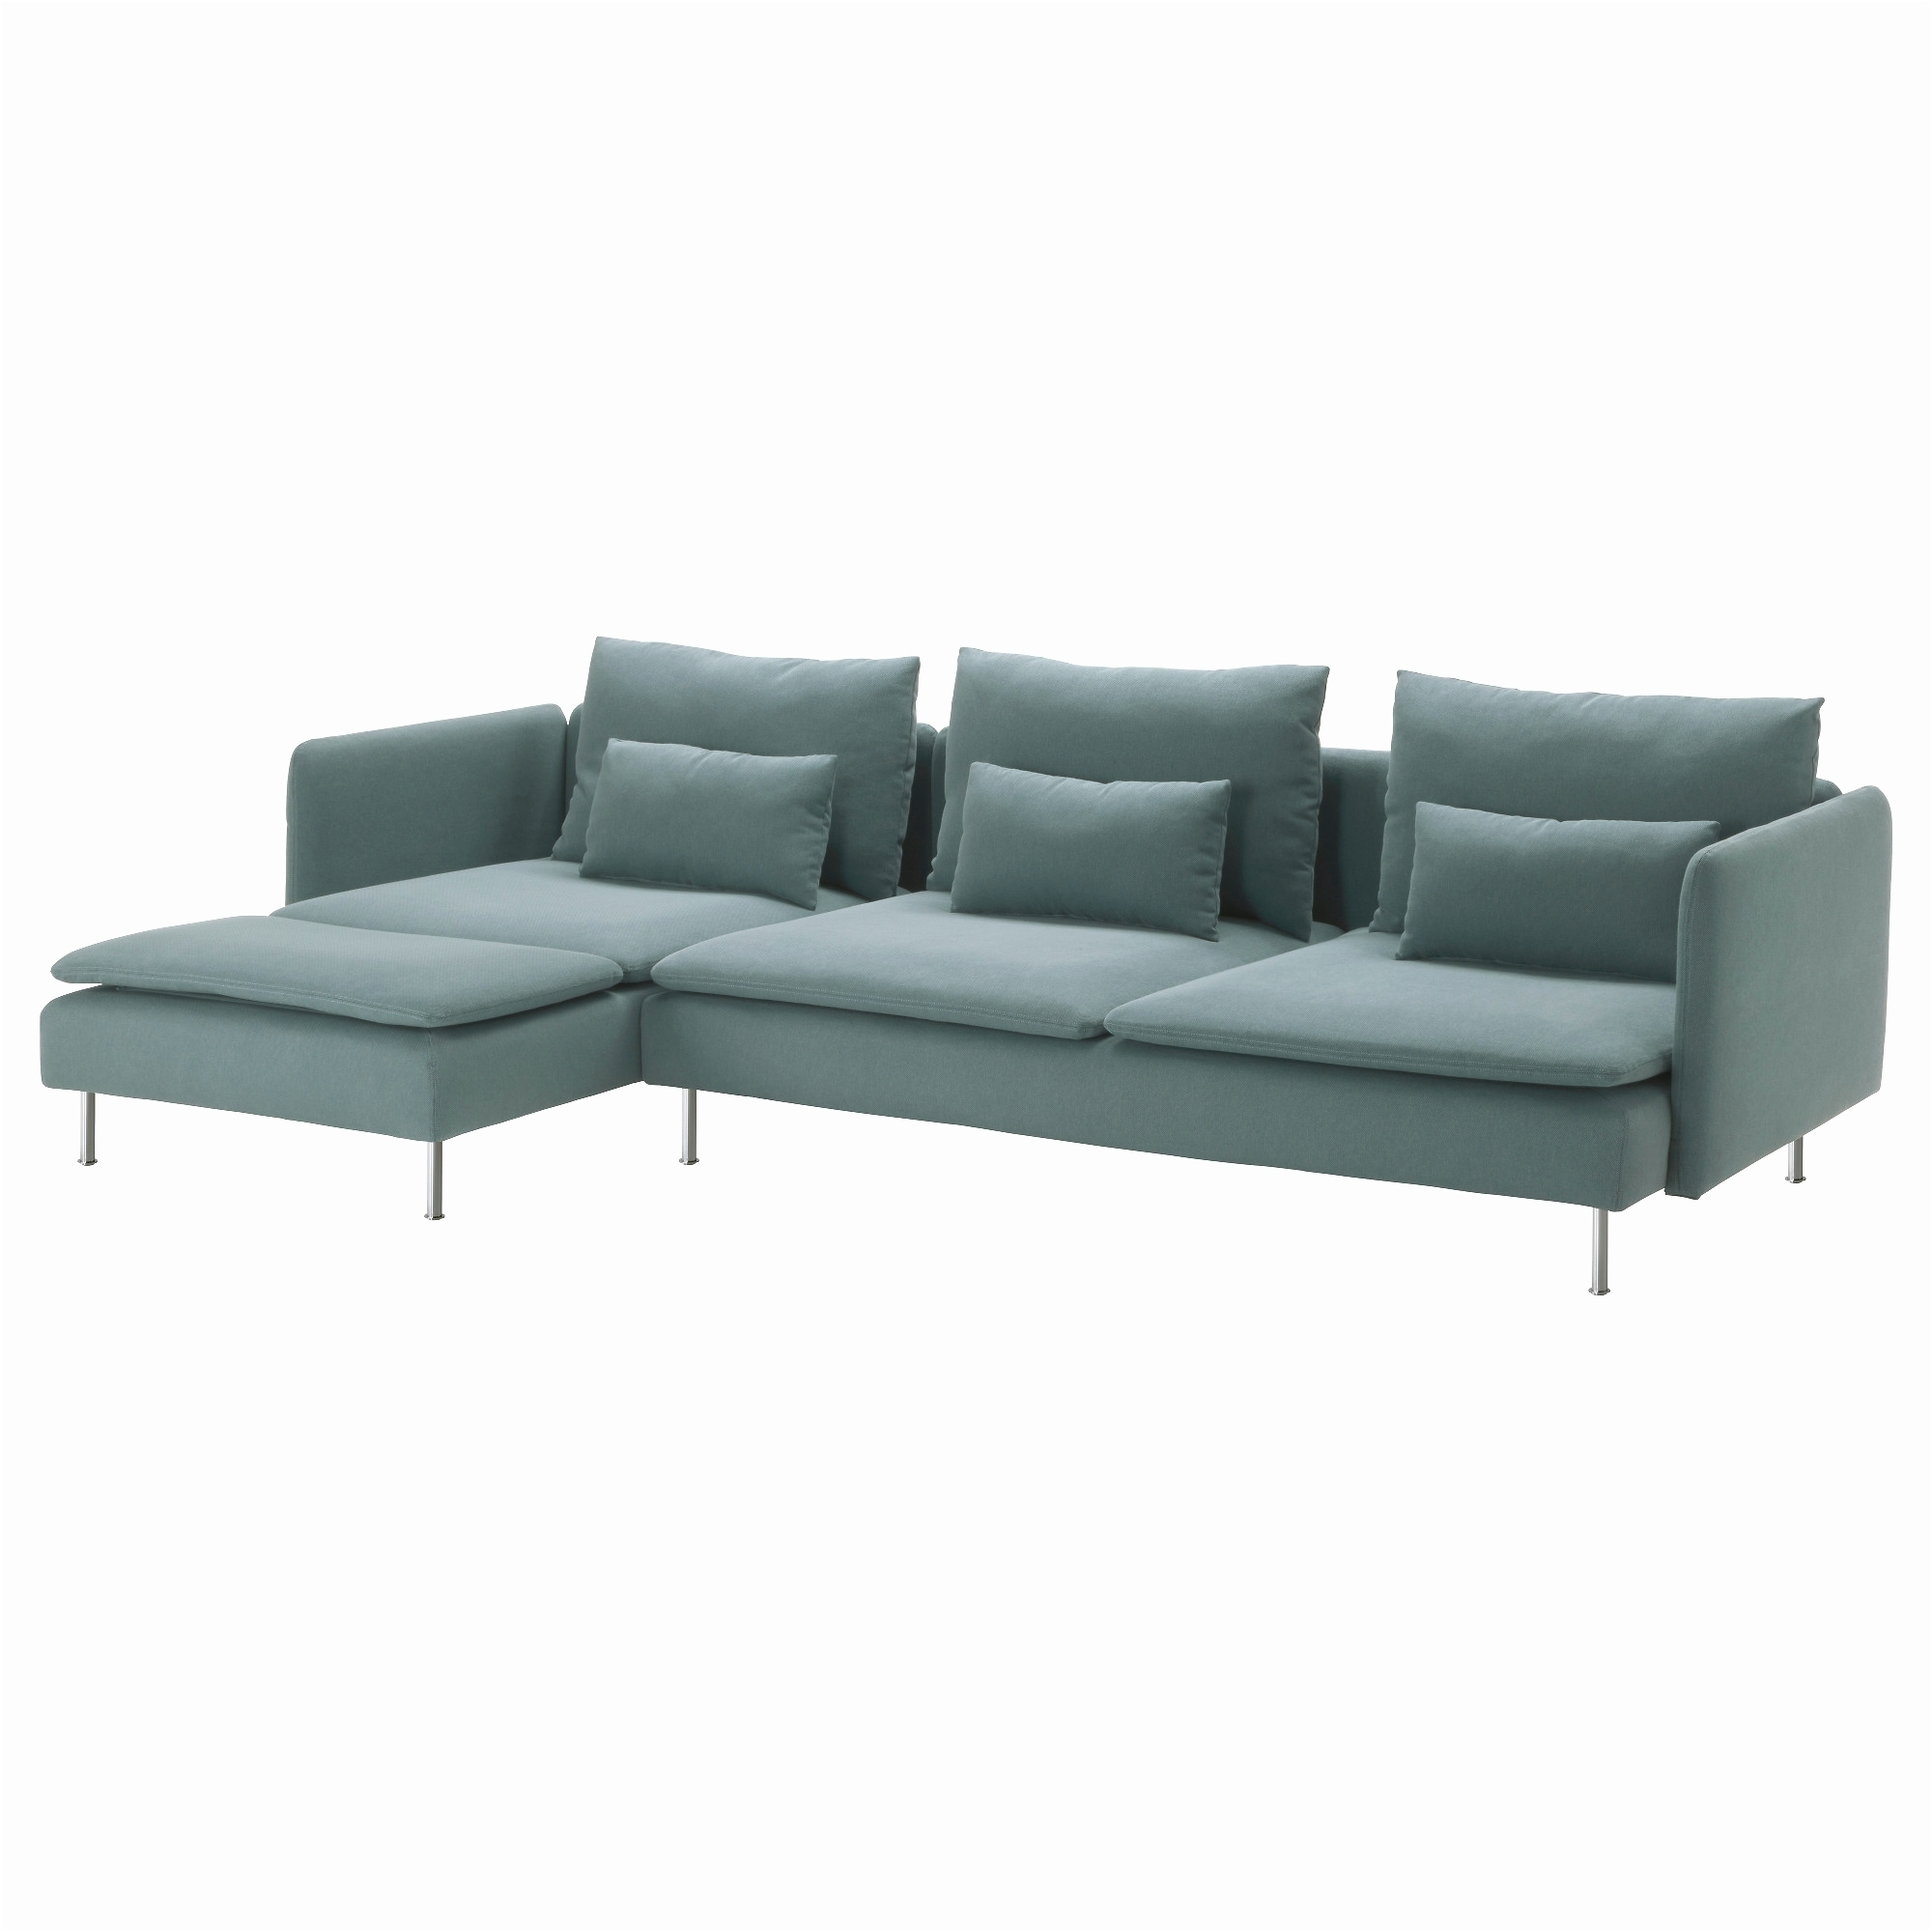 Sofa Pertaining To Kingston Ontario Sectional Sofas (View 8 of 15)